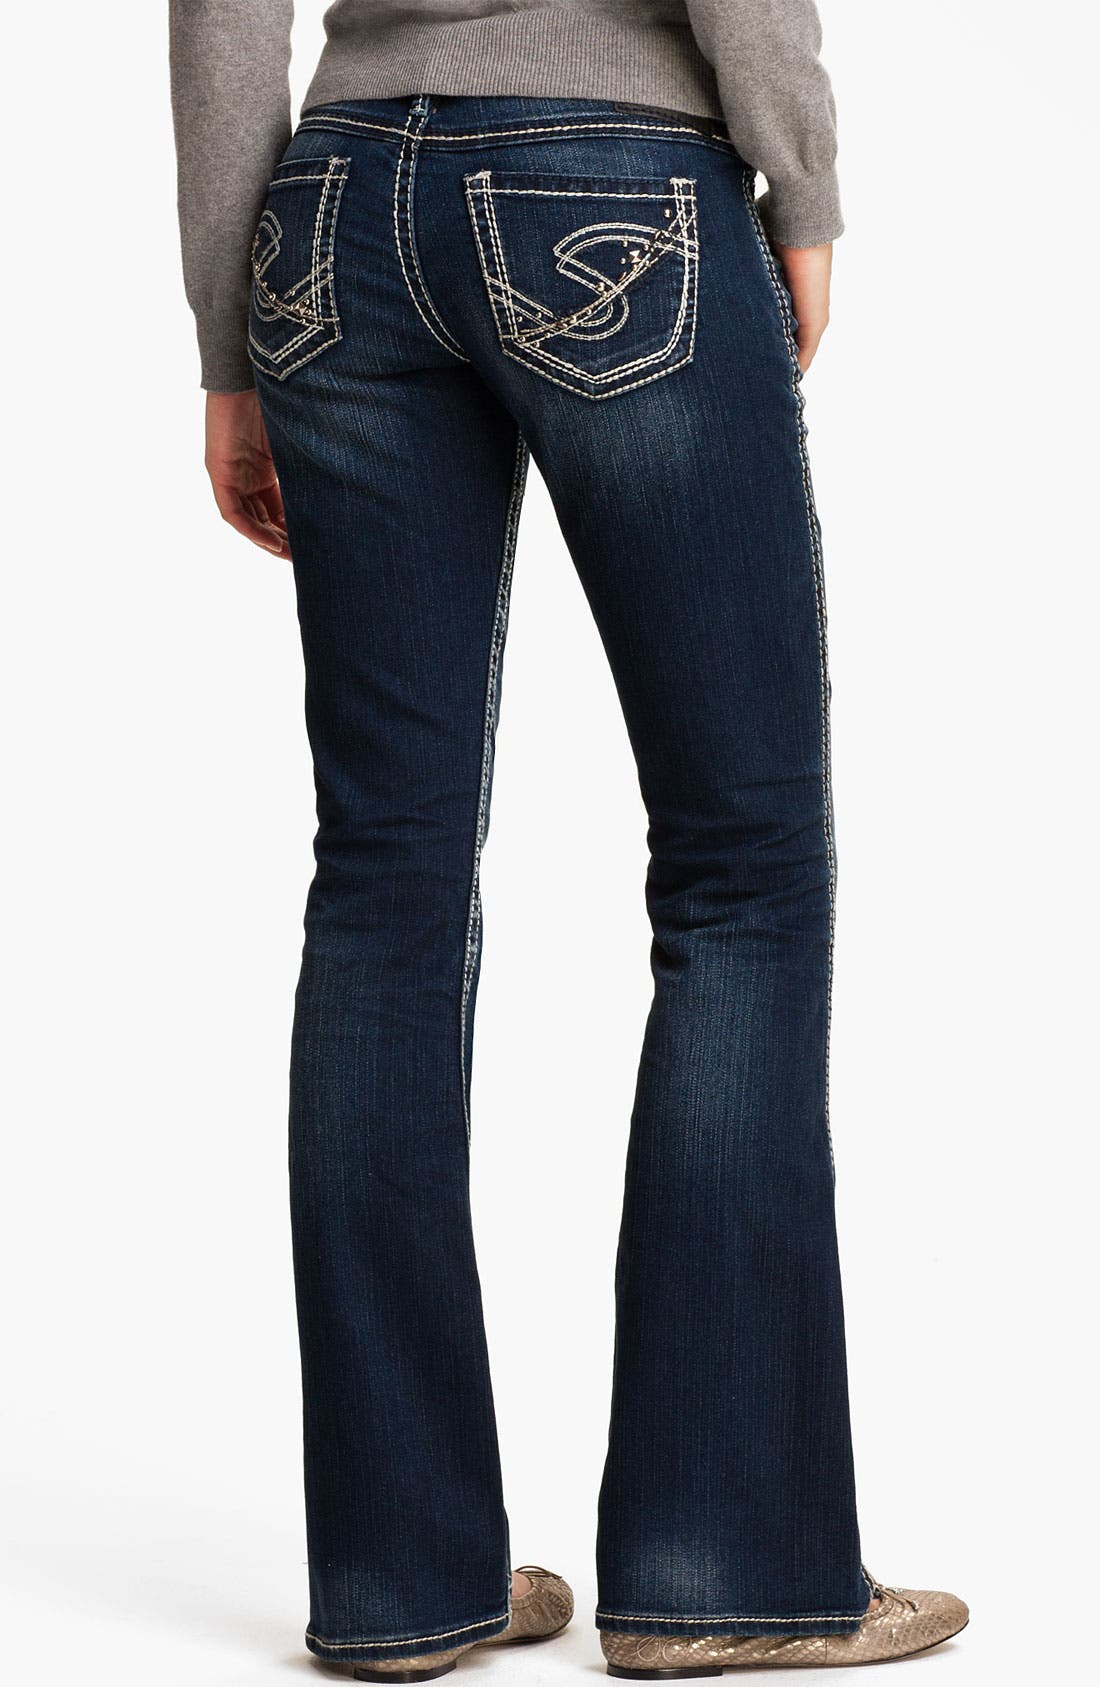 Alternate Image 1 Selected - Silver Jeans Co. 'Twisted' Bootcut Jeans (Juniors)